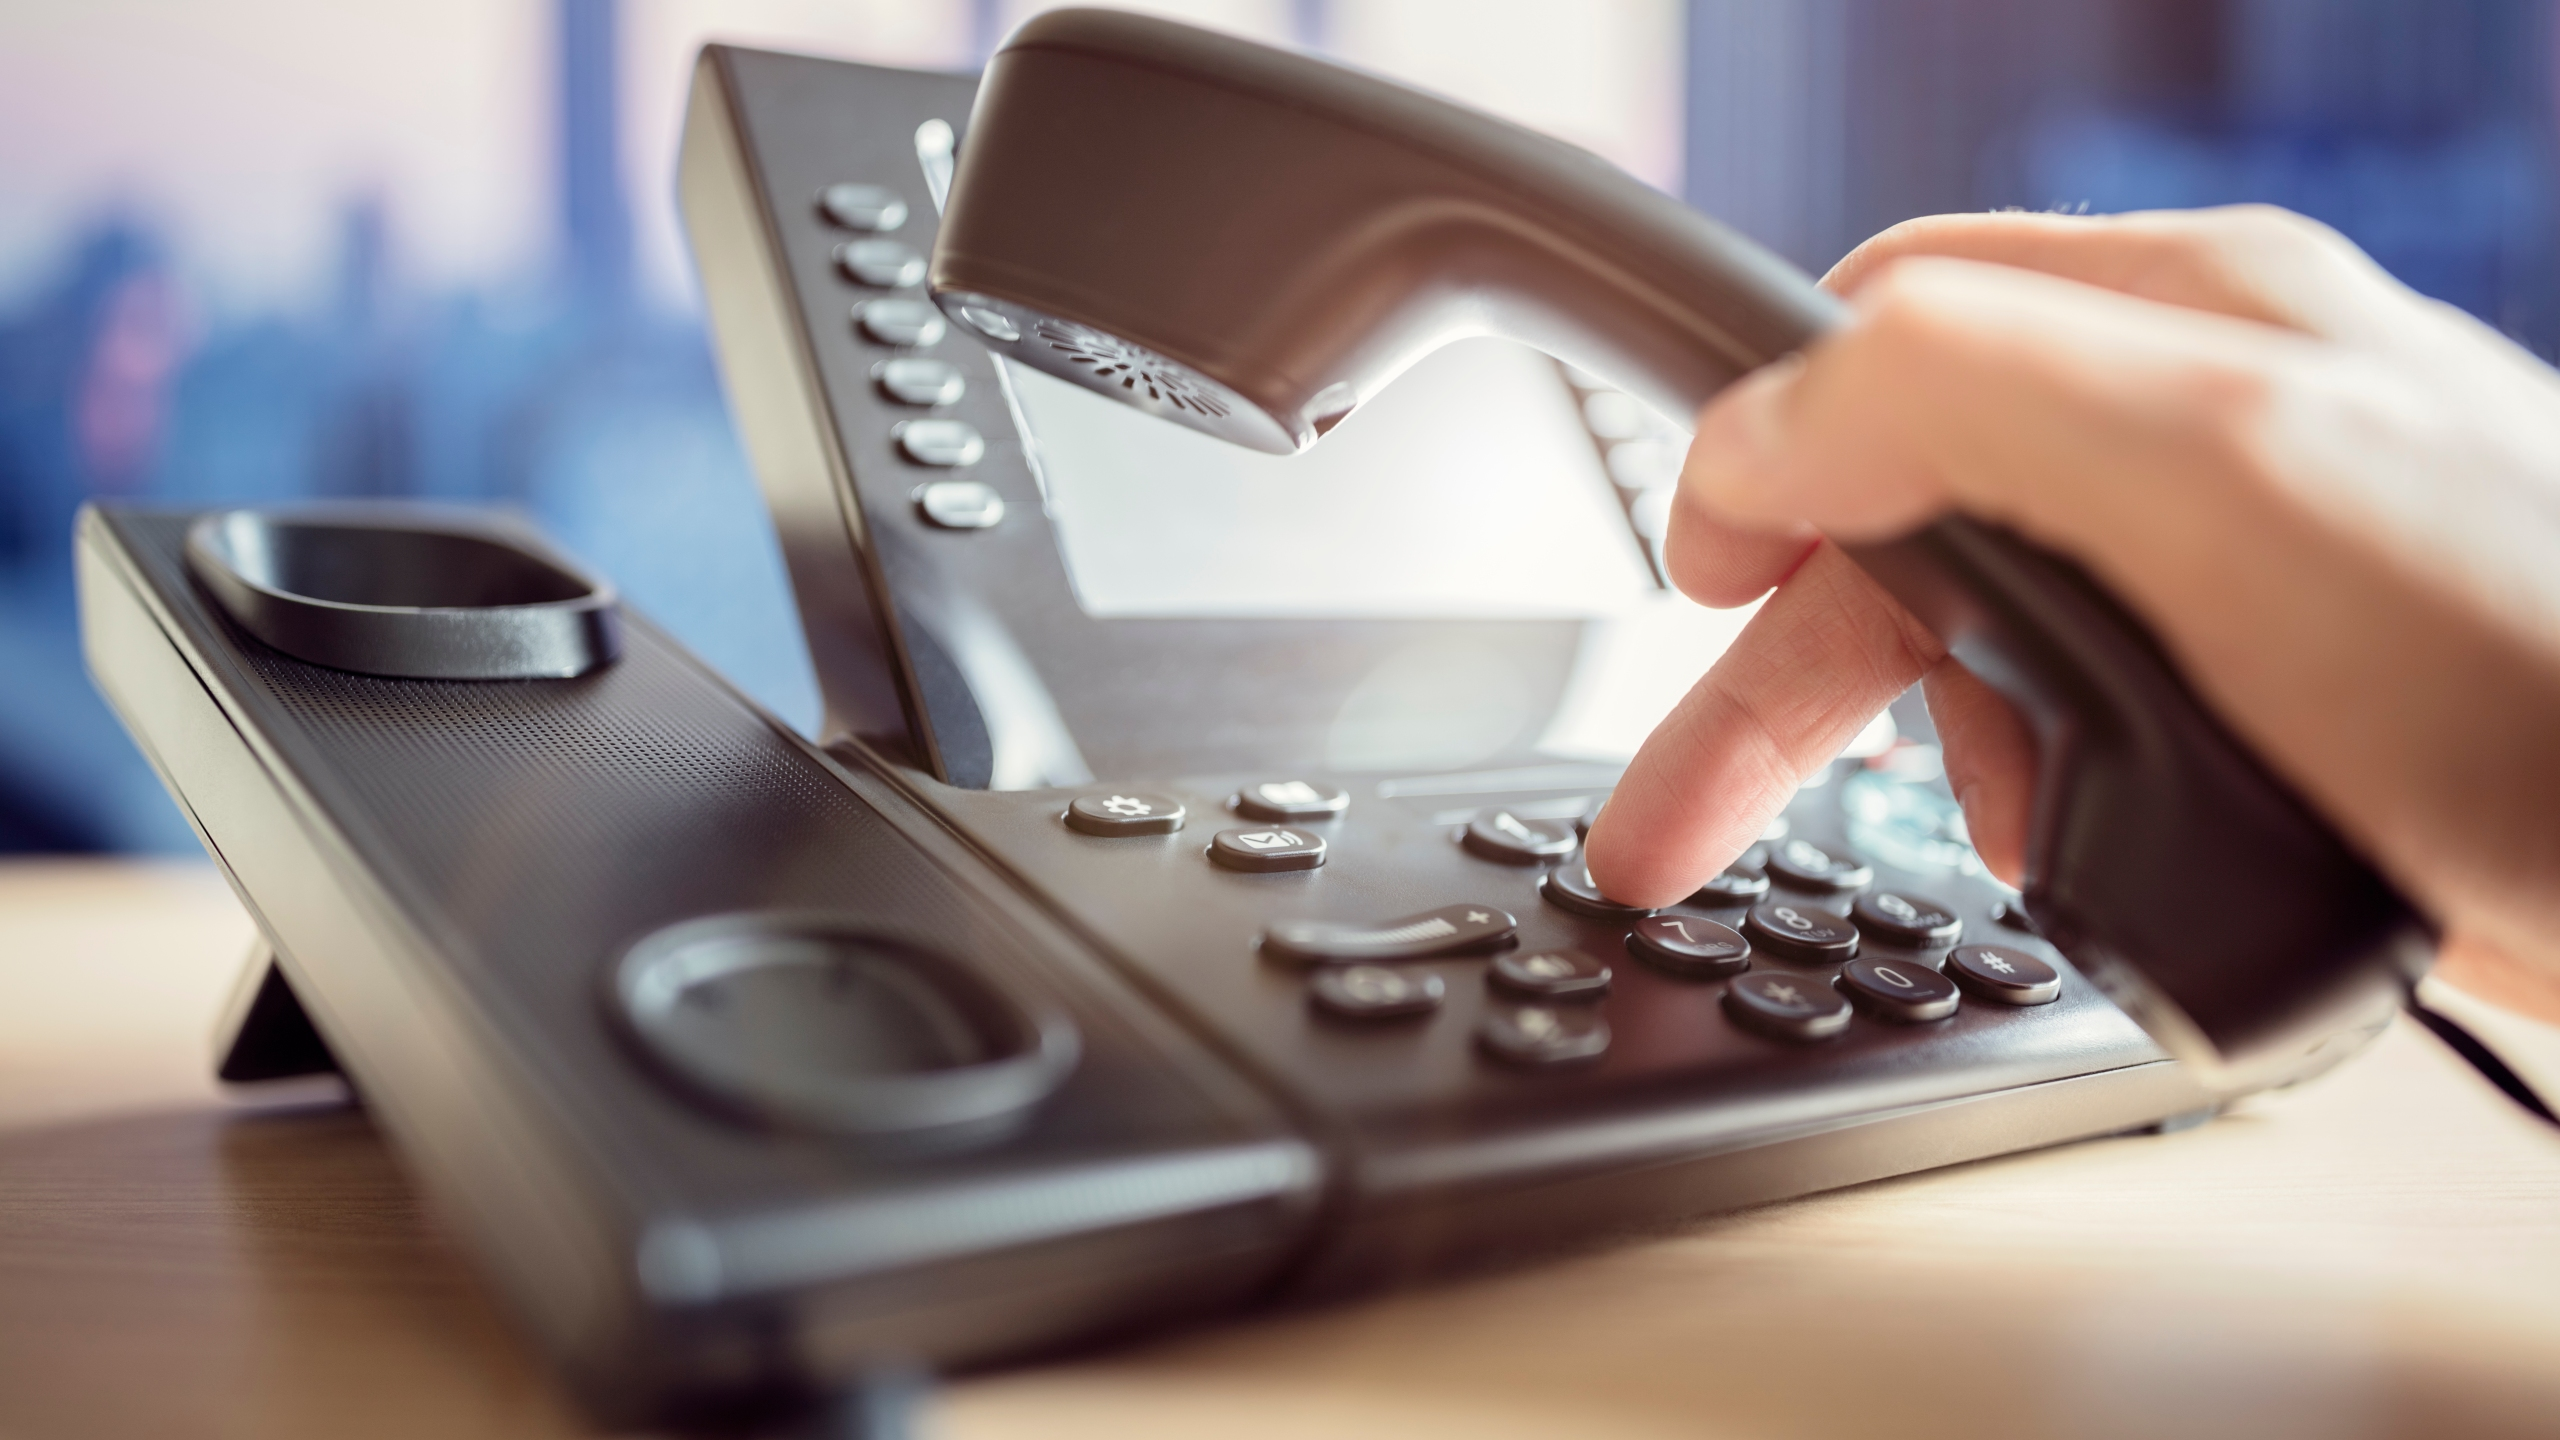 Someone is seen dialing to make a telephone call in this file photo. (Credit: iStock / Getty Images Plus)